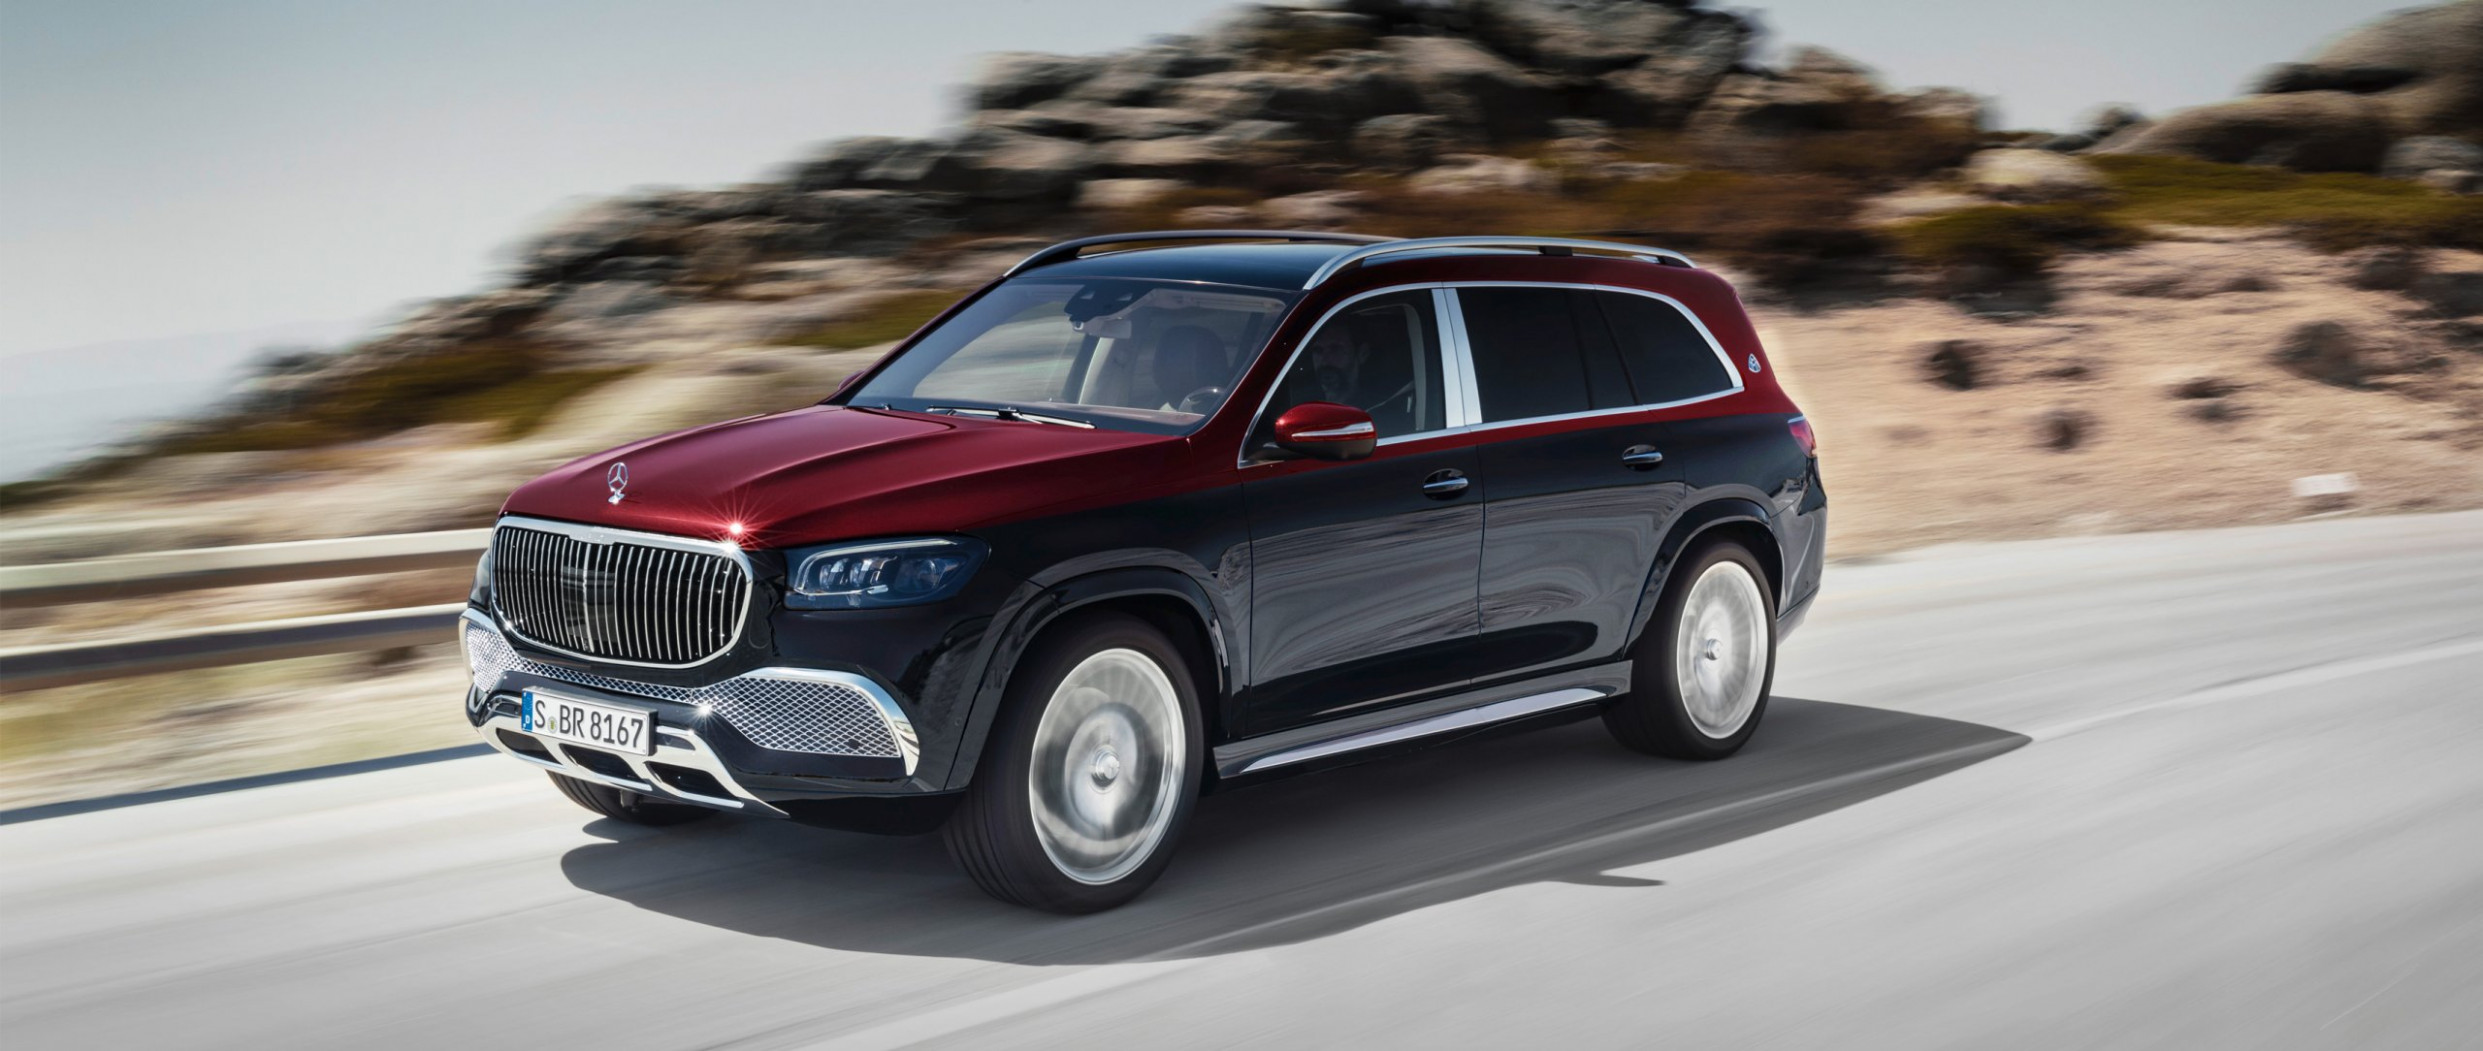 The new Mercedes-Maybach GLS.